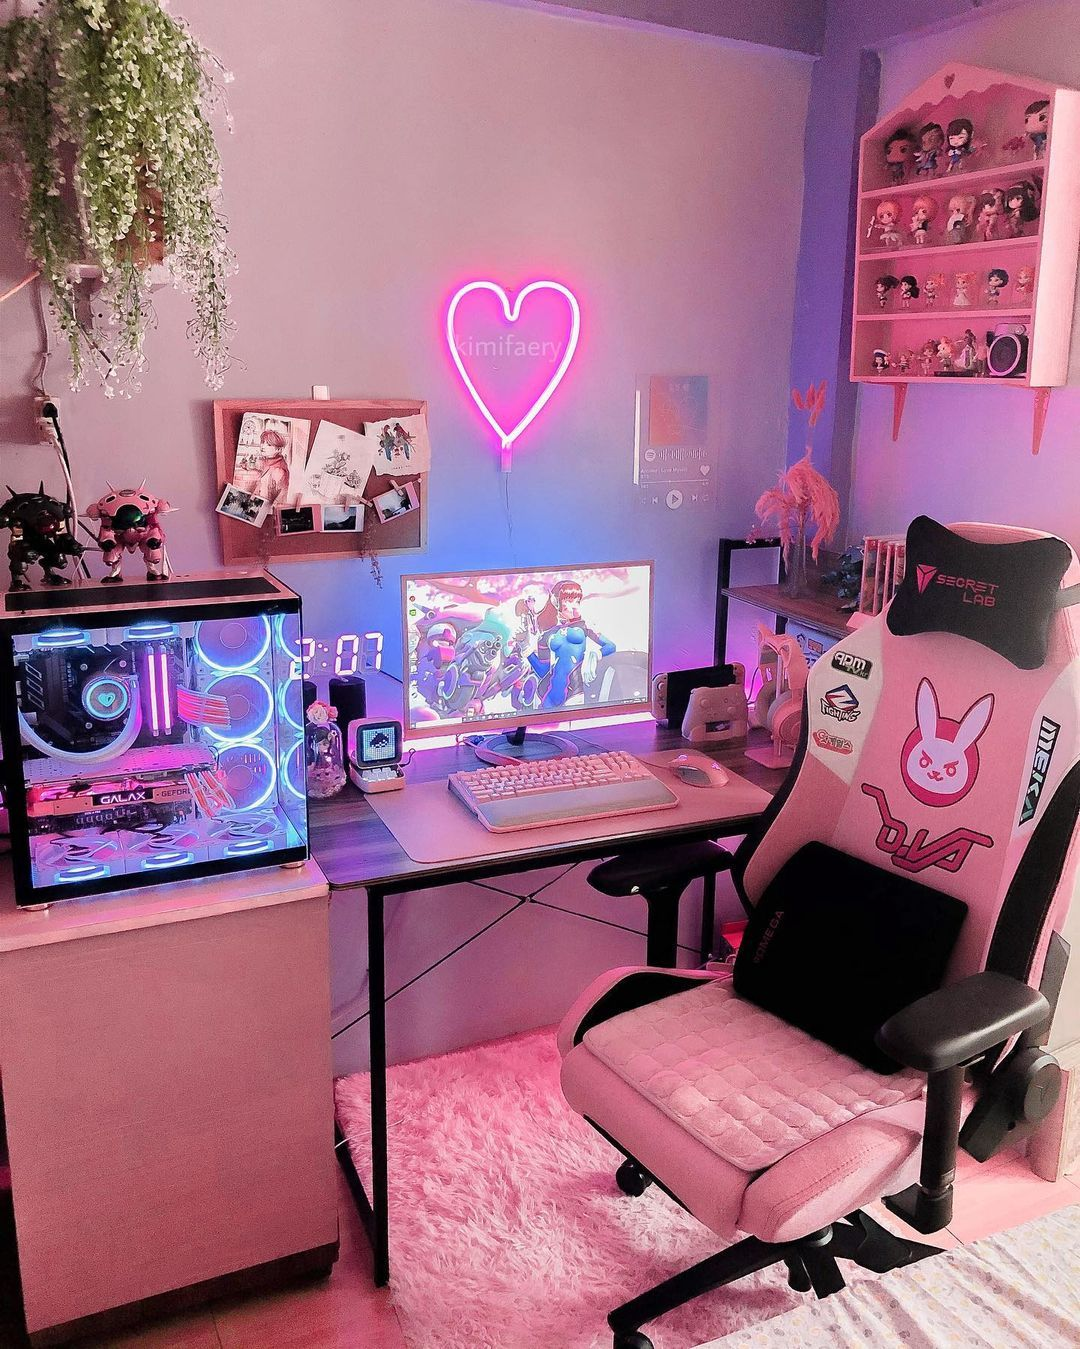 Kimi Kimifaery Posted On Instagram What Is This How Are We 4k Already Please Enjoy This Photo Of Gamer Room Decor Game Room Design Otaku Room Bedroom set genshin impact